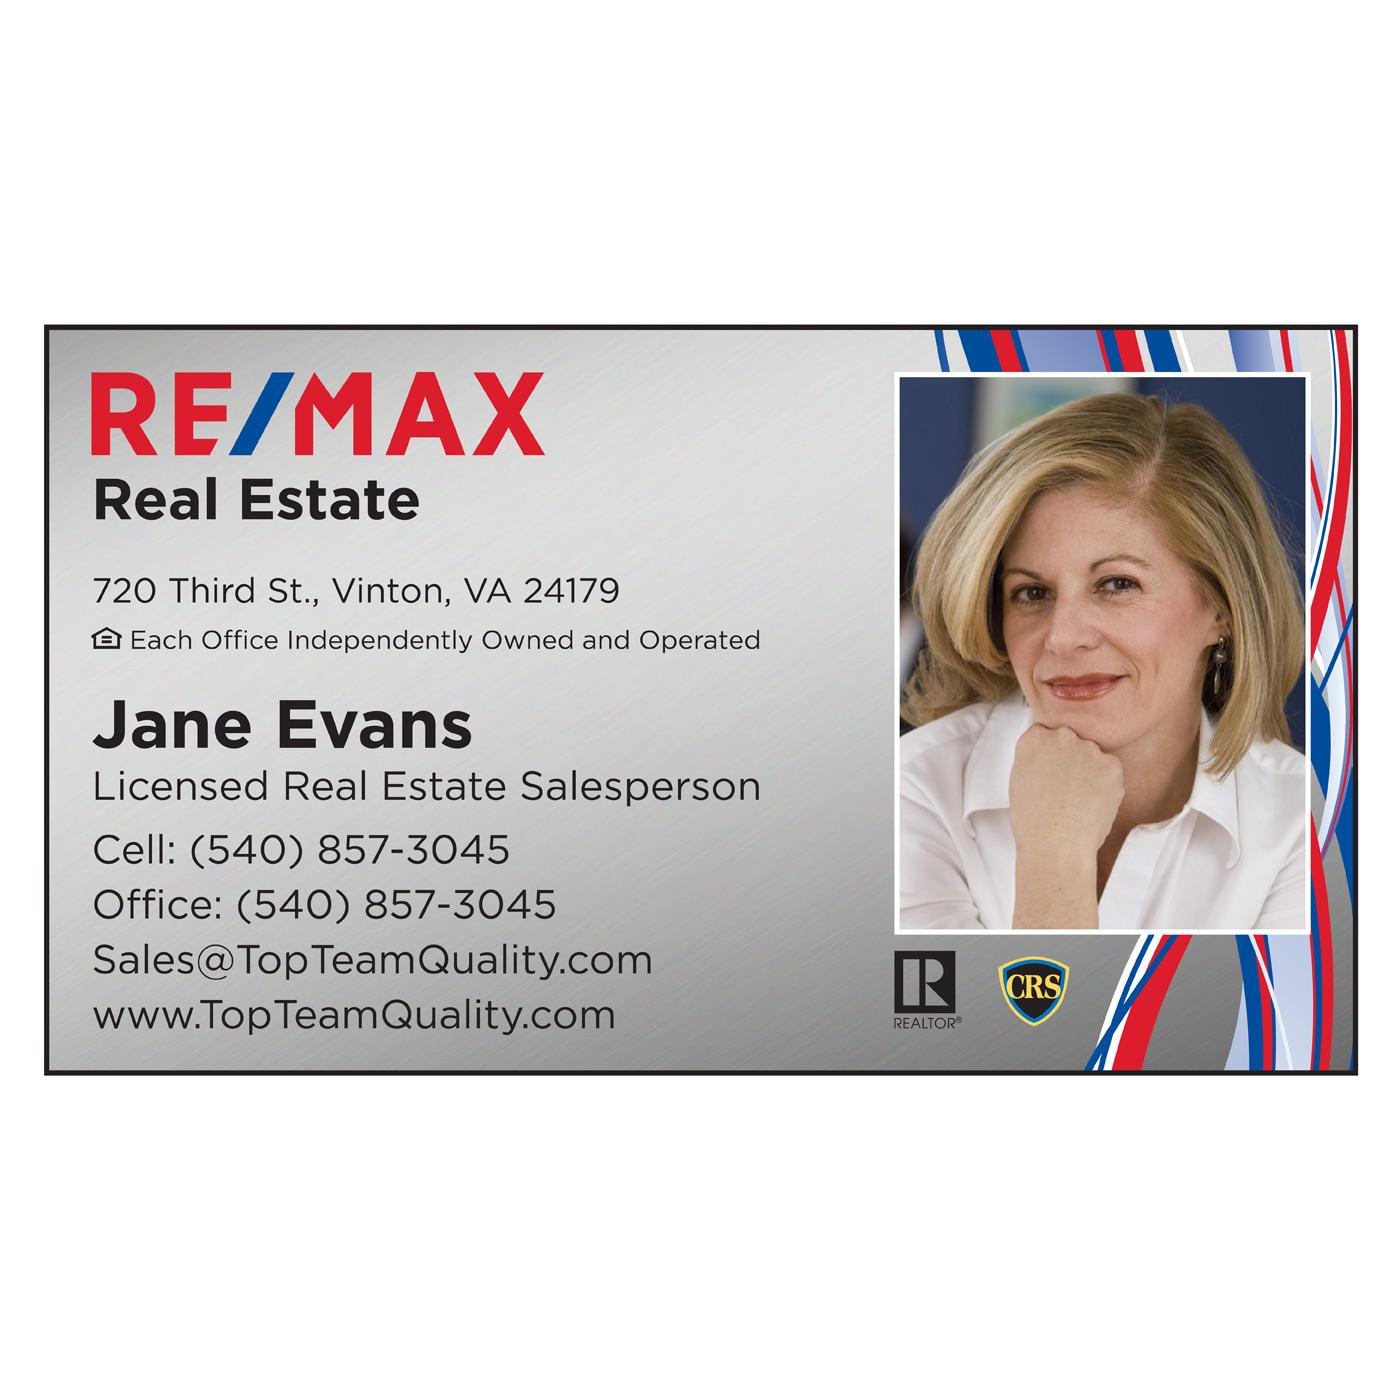 RE/MAX standard business card